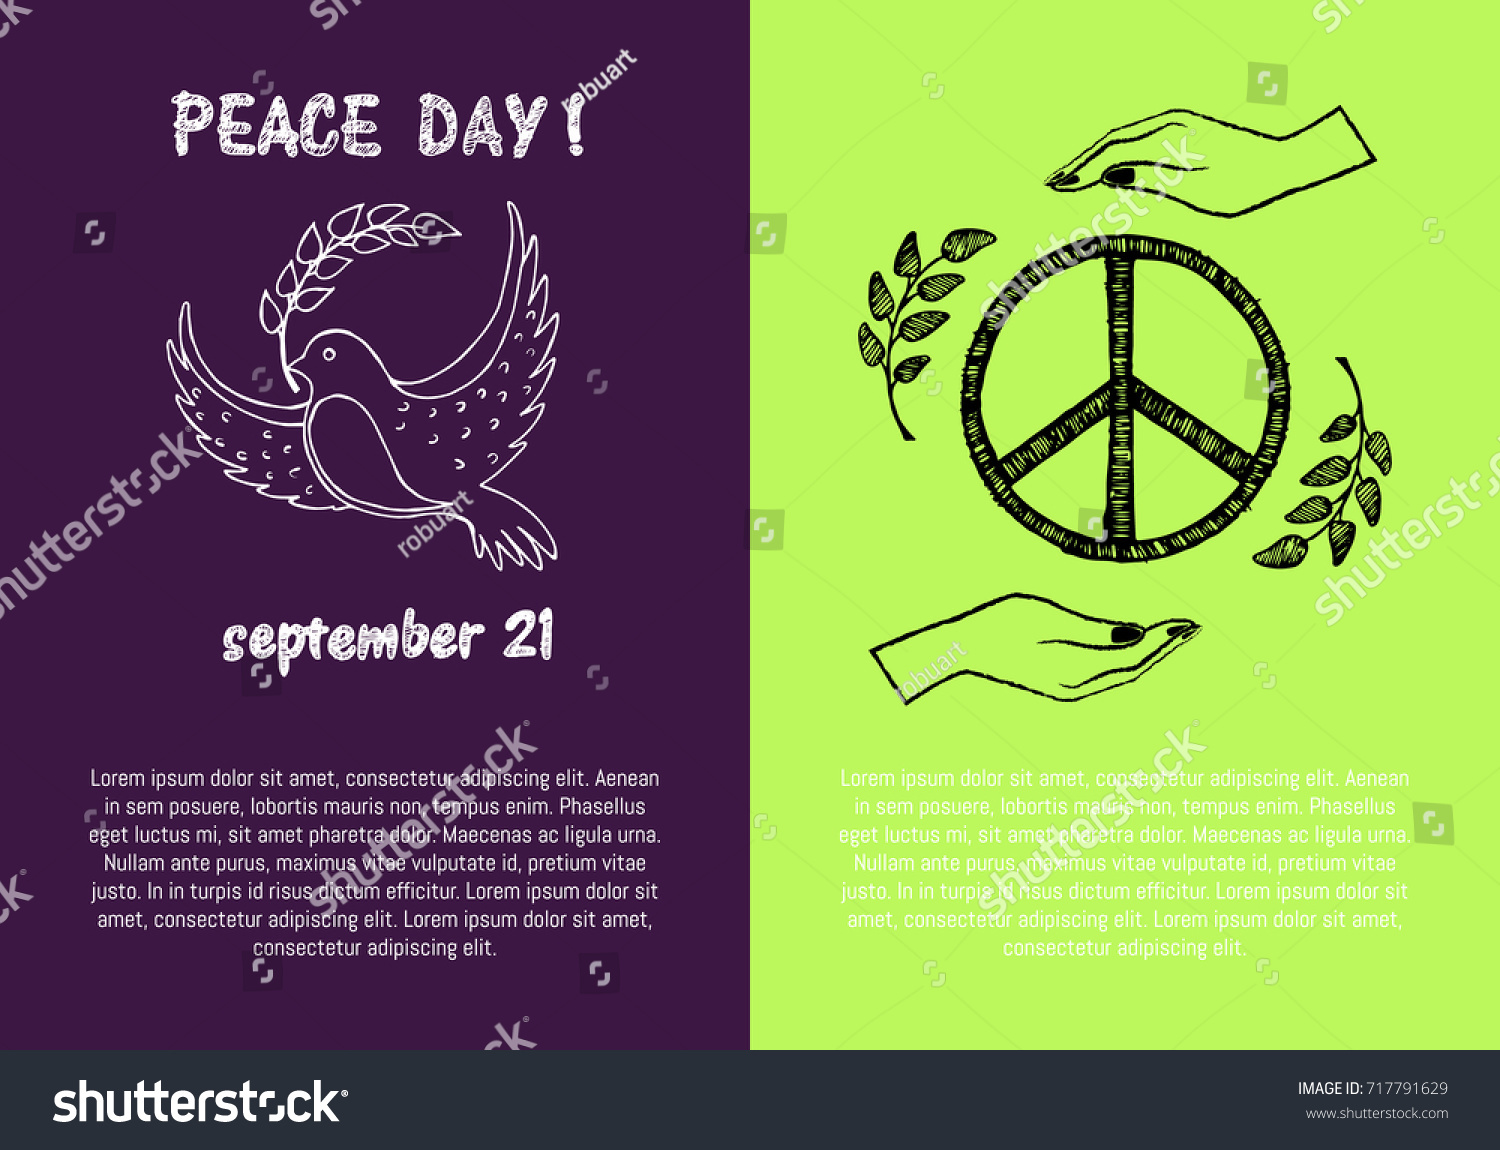 Peace day september 21 two pictures stock vector 717791629 peace day september 21 two pictures concerning holiday presenting symbols and filling form for biocorpaavc Images